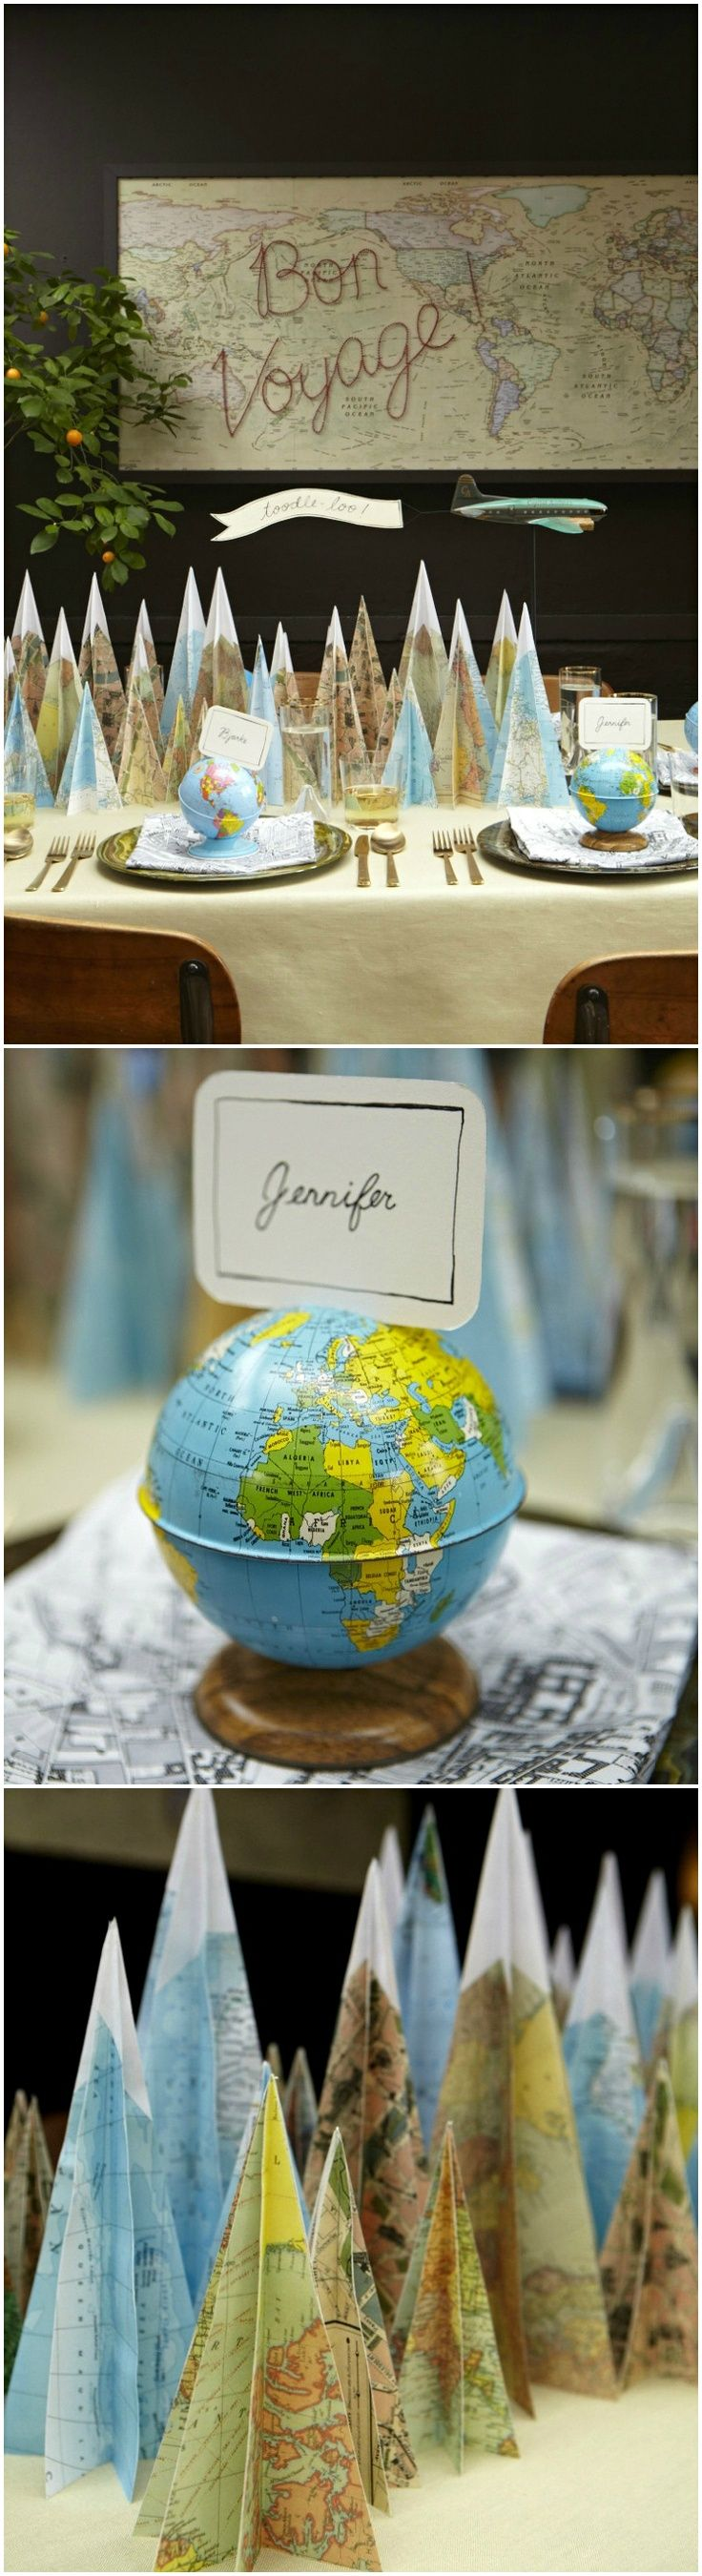 DIY Crafts - Gift Ideas - Party Themes - Find the maps you need here http://www.mapsales.com/?utm_source=pinterest&utm_medium=pin&utm_campaign=caption